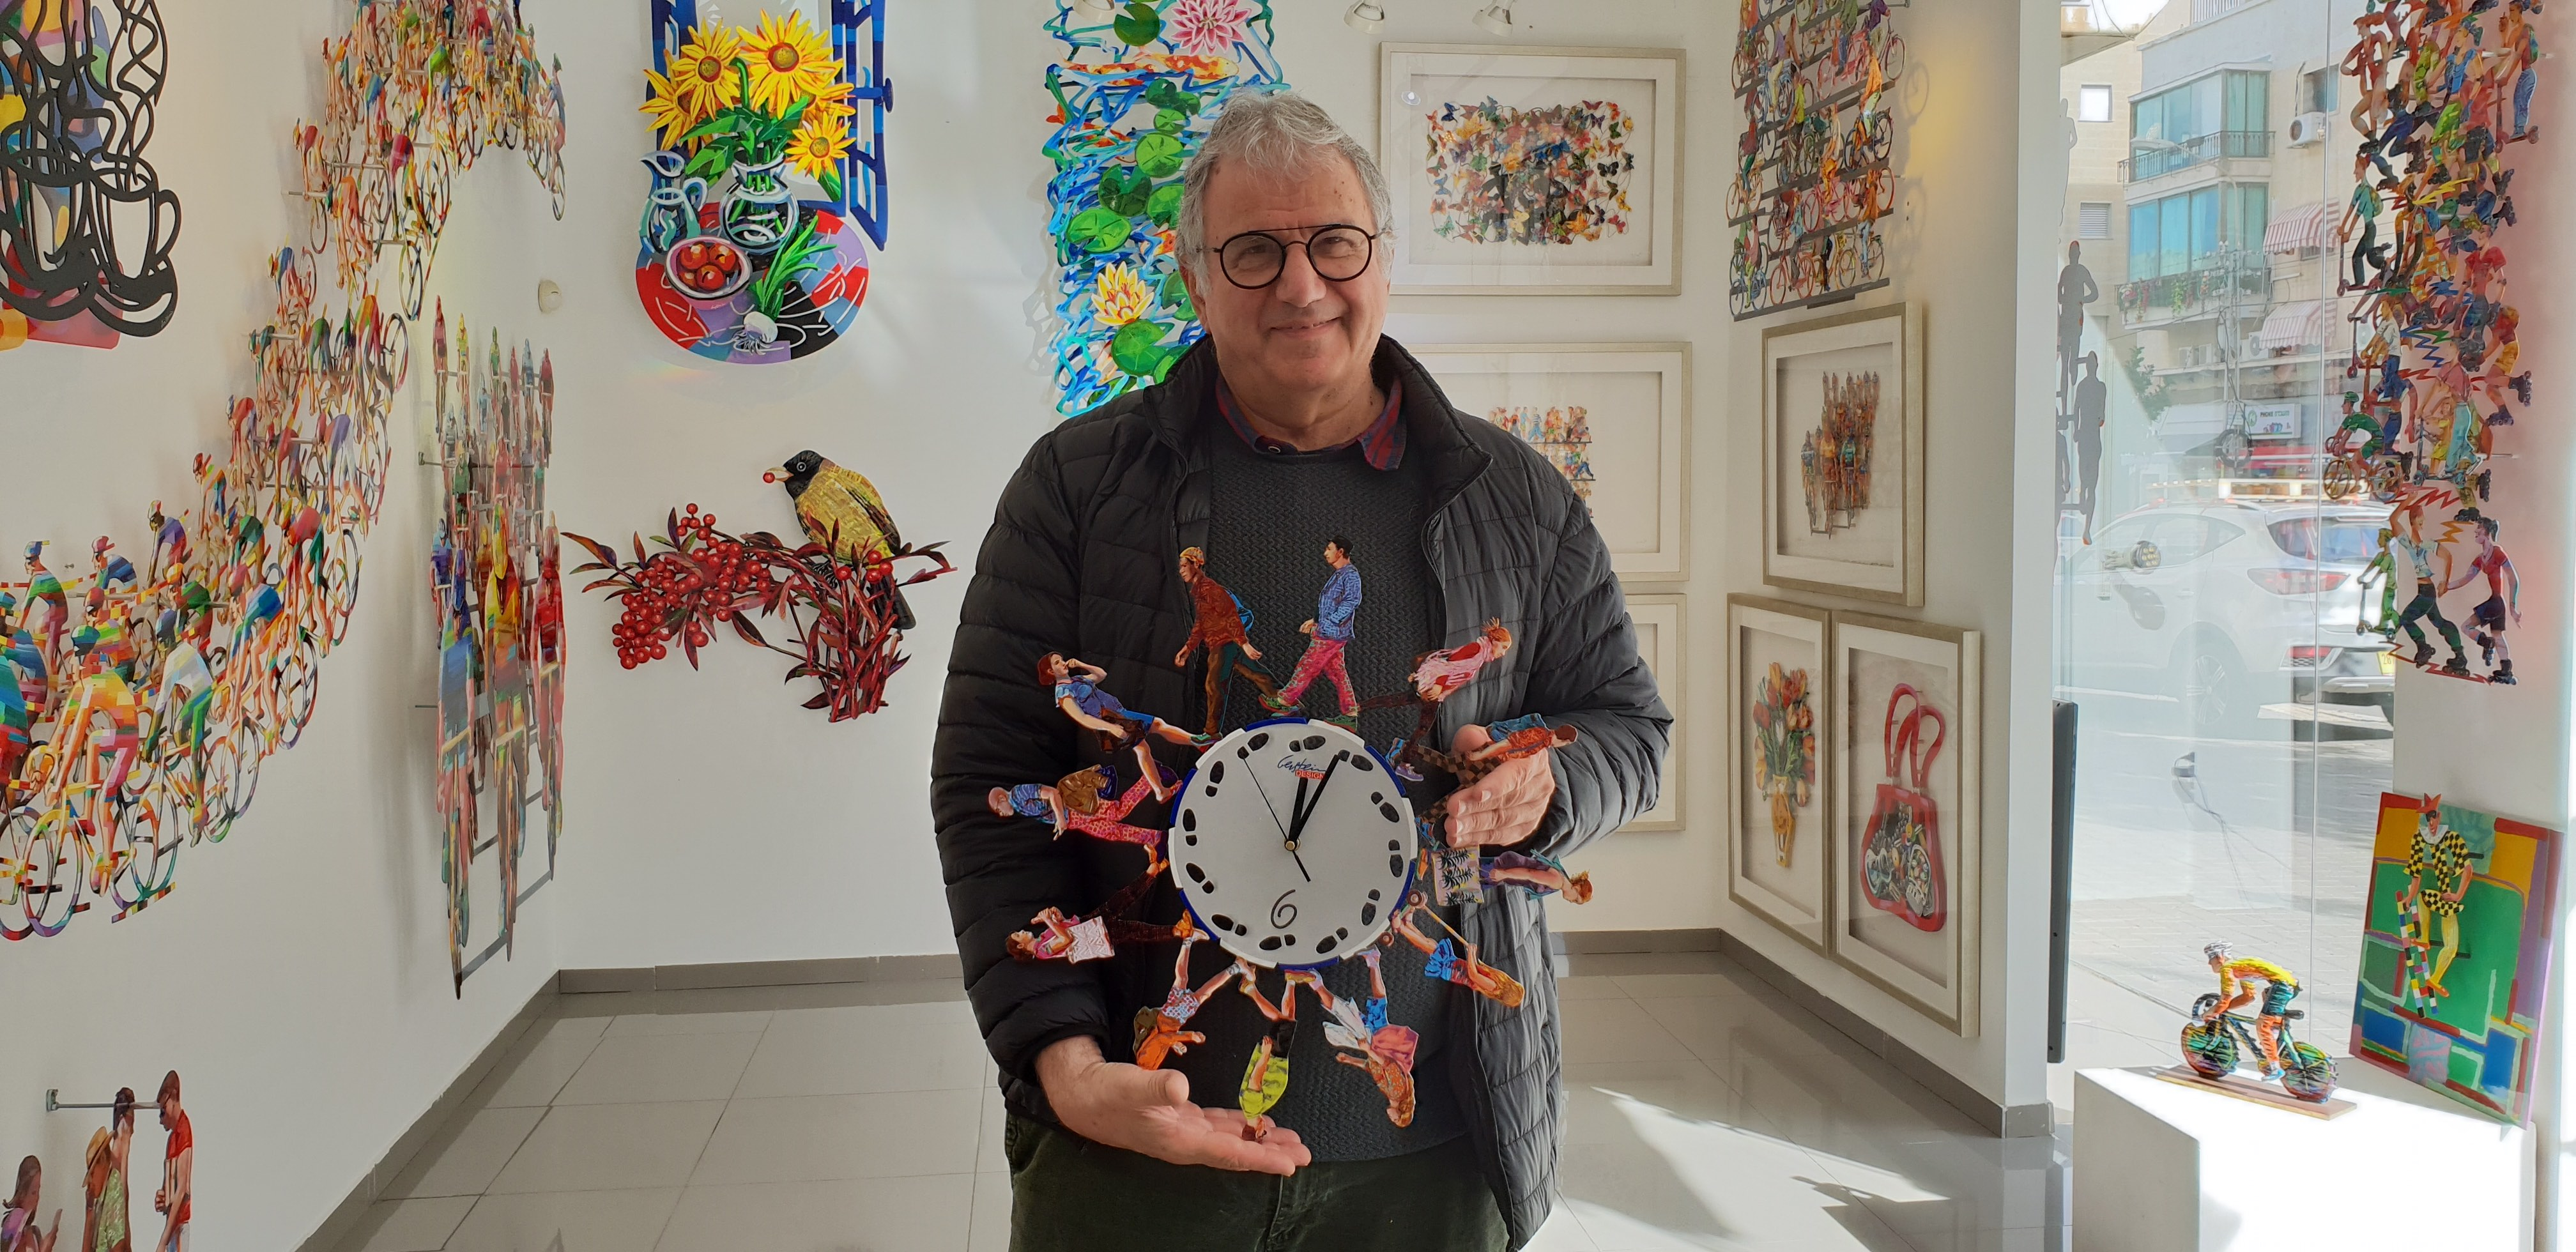 Artist David Gerstein holding his Walkers Time Clock at Gerstein gallery in Tel Aviv